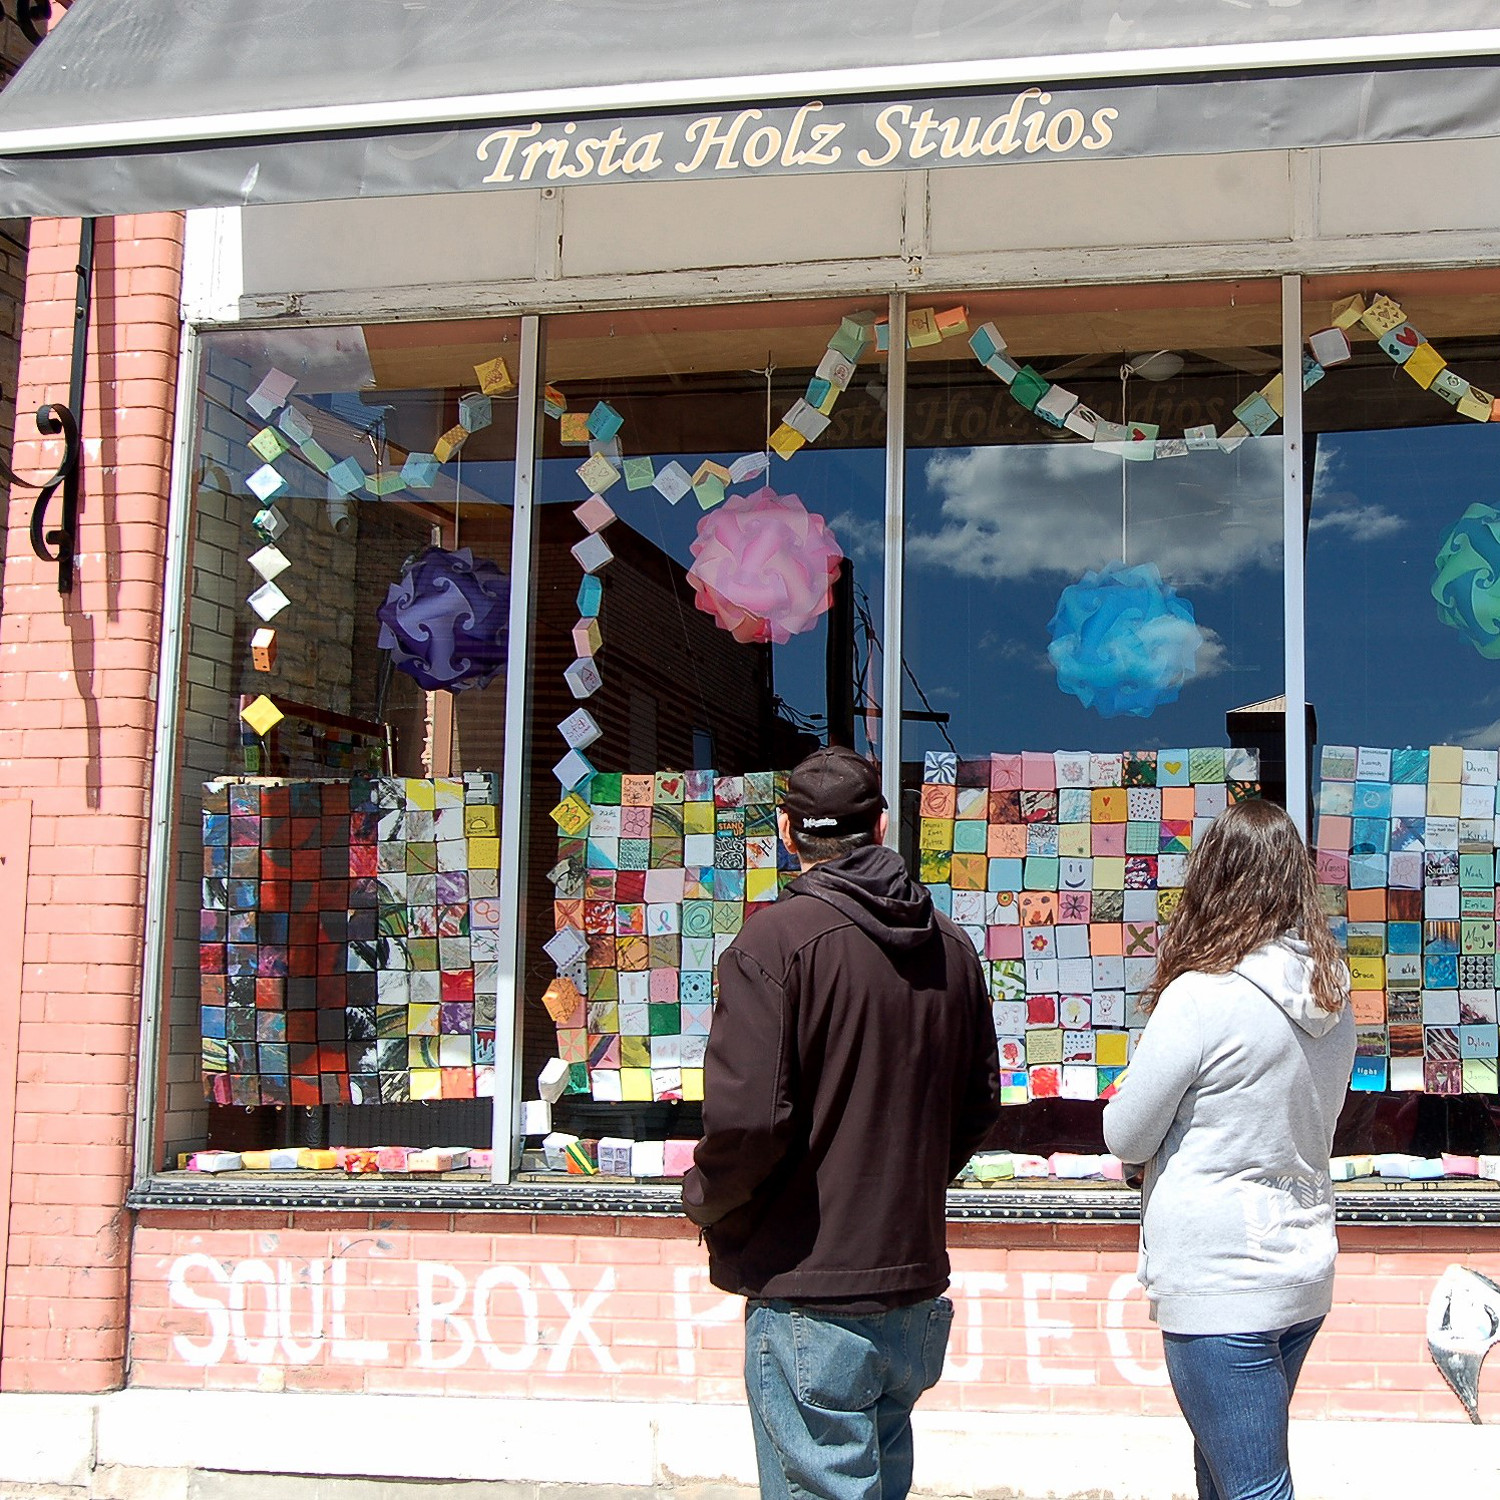 Shop window exhibit, Trista Holtz Studios, Fond Du Lac, WI. Boxes made by Art Therapy and Art students and athletes at Marian University, Oshkosh, WI